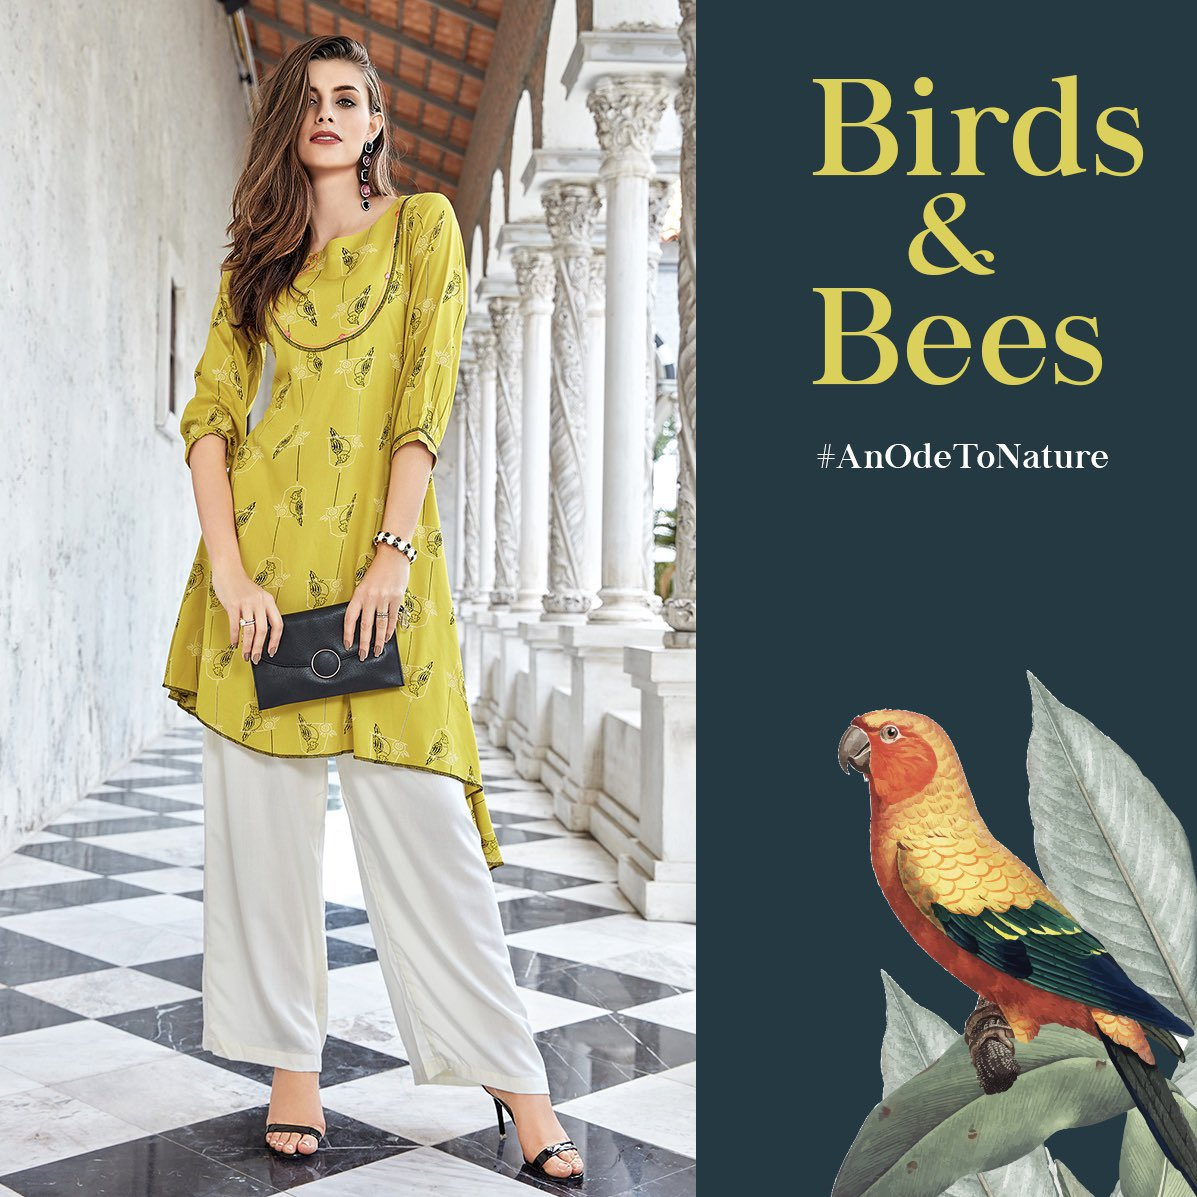 It's no surprise that nature influences fashion in a lot of ways. Here is one such piece from Neeru's India that is inspired birds.   Our standout styles are here to sweep you off your feet. Visit http://neerus.com  now!   #Neerus #NeerusIndia #AnOdeToNature #NatureInspired pic.twitter.com/MZtjZShfCl